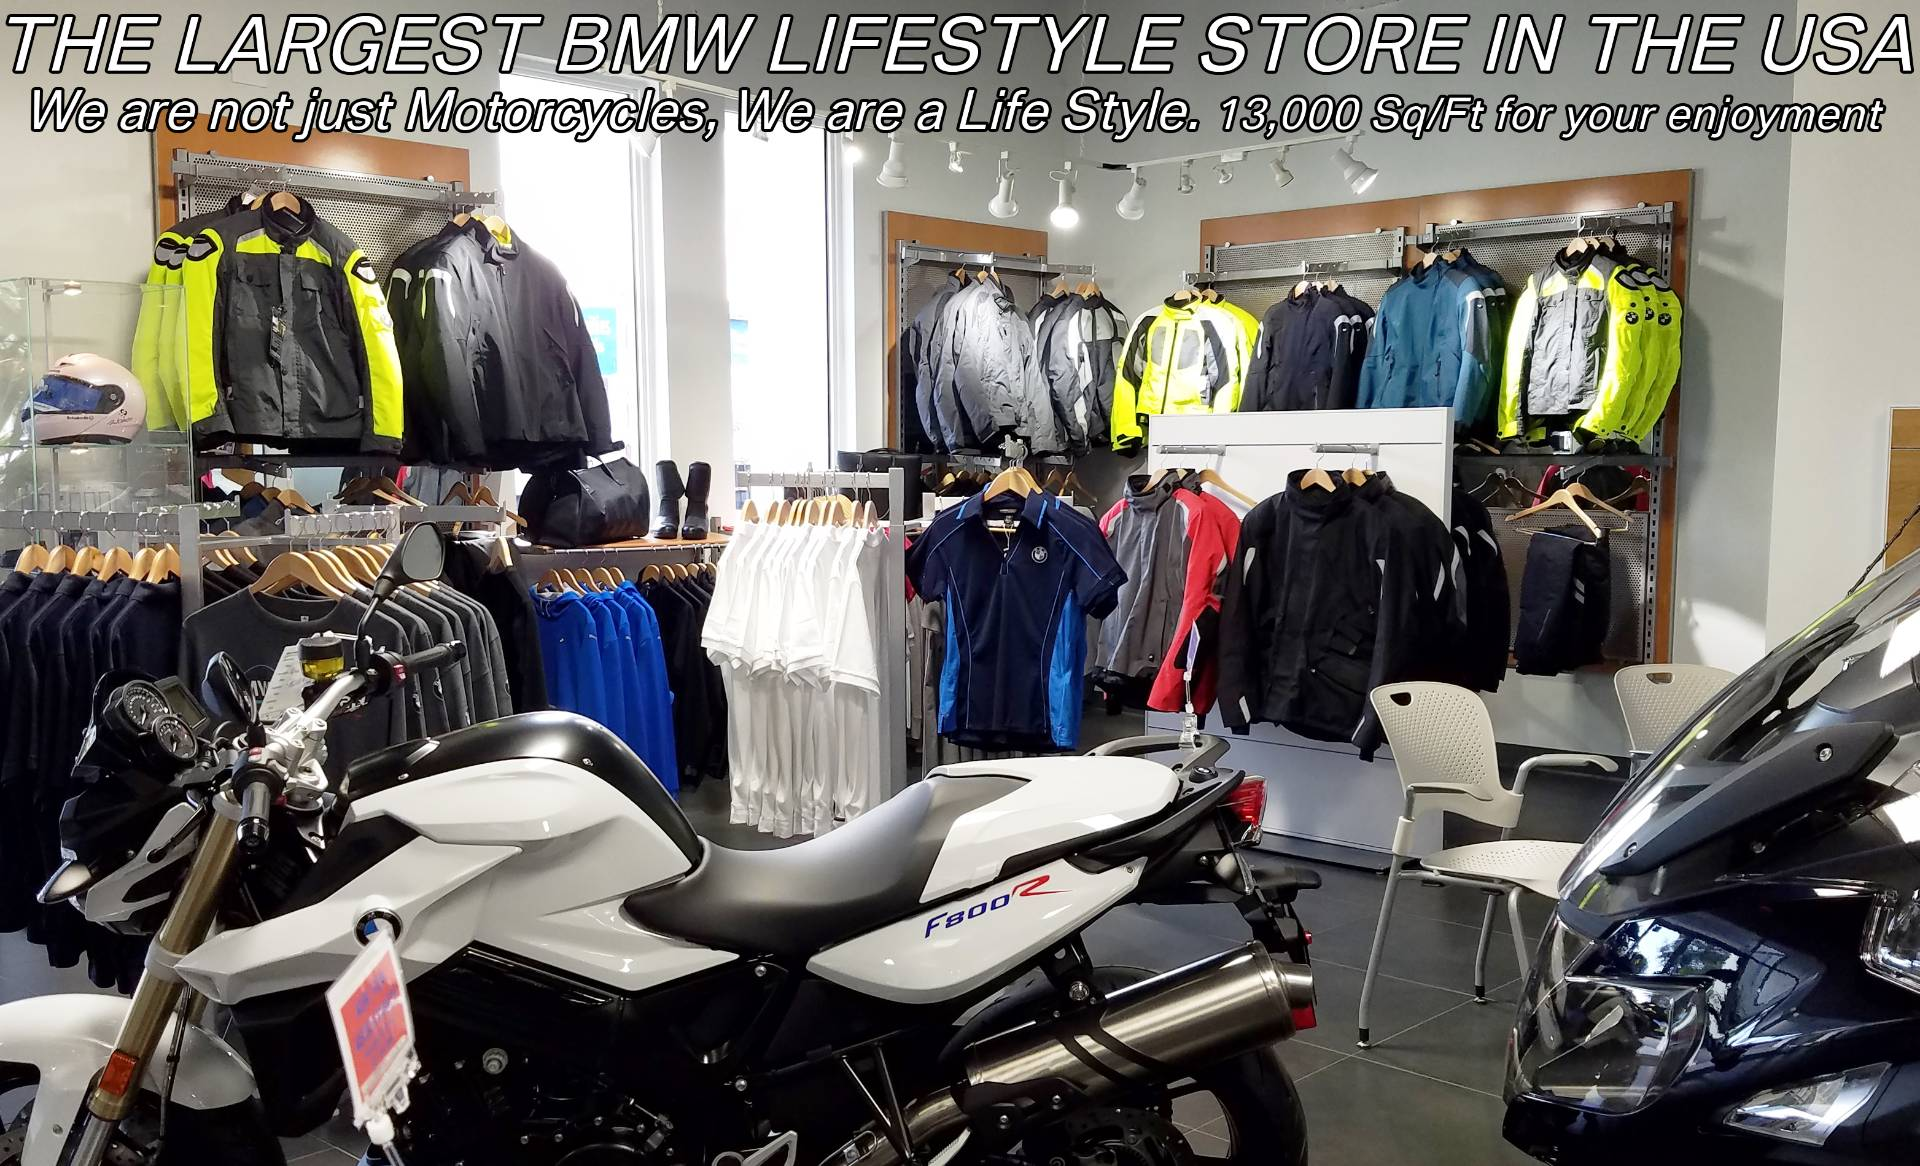 New 2019 BMW F 850 GSA for sale, BMW F 850GSA for sale, BMW Motorcycle F850GSA, new BMW 850 Adventure, Adventure. BMW Motorcycles of Miami, Motorcycles of Miami, Motorcycles Miami, New Motorcycles, Used Motorcycles, pre-owned. #BMWMotorcyclesOfMiami #MotorcyclesOfMiami #MotorcyclesMiami - Photo 36